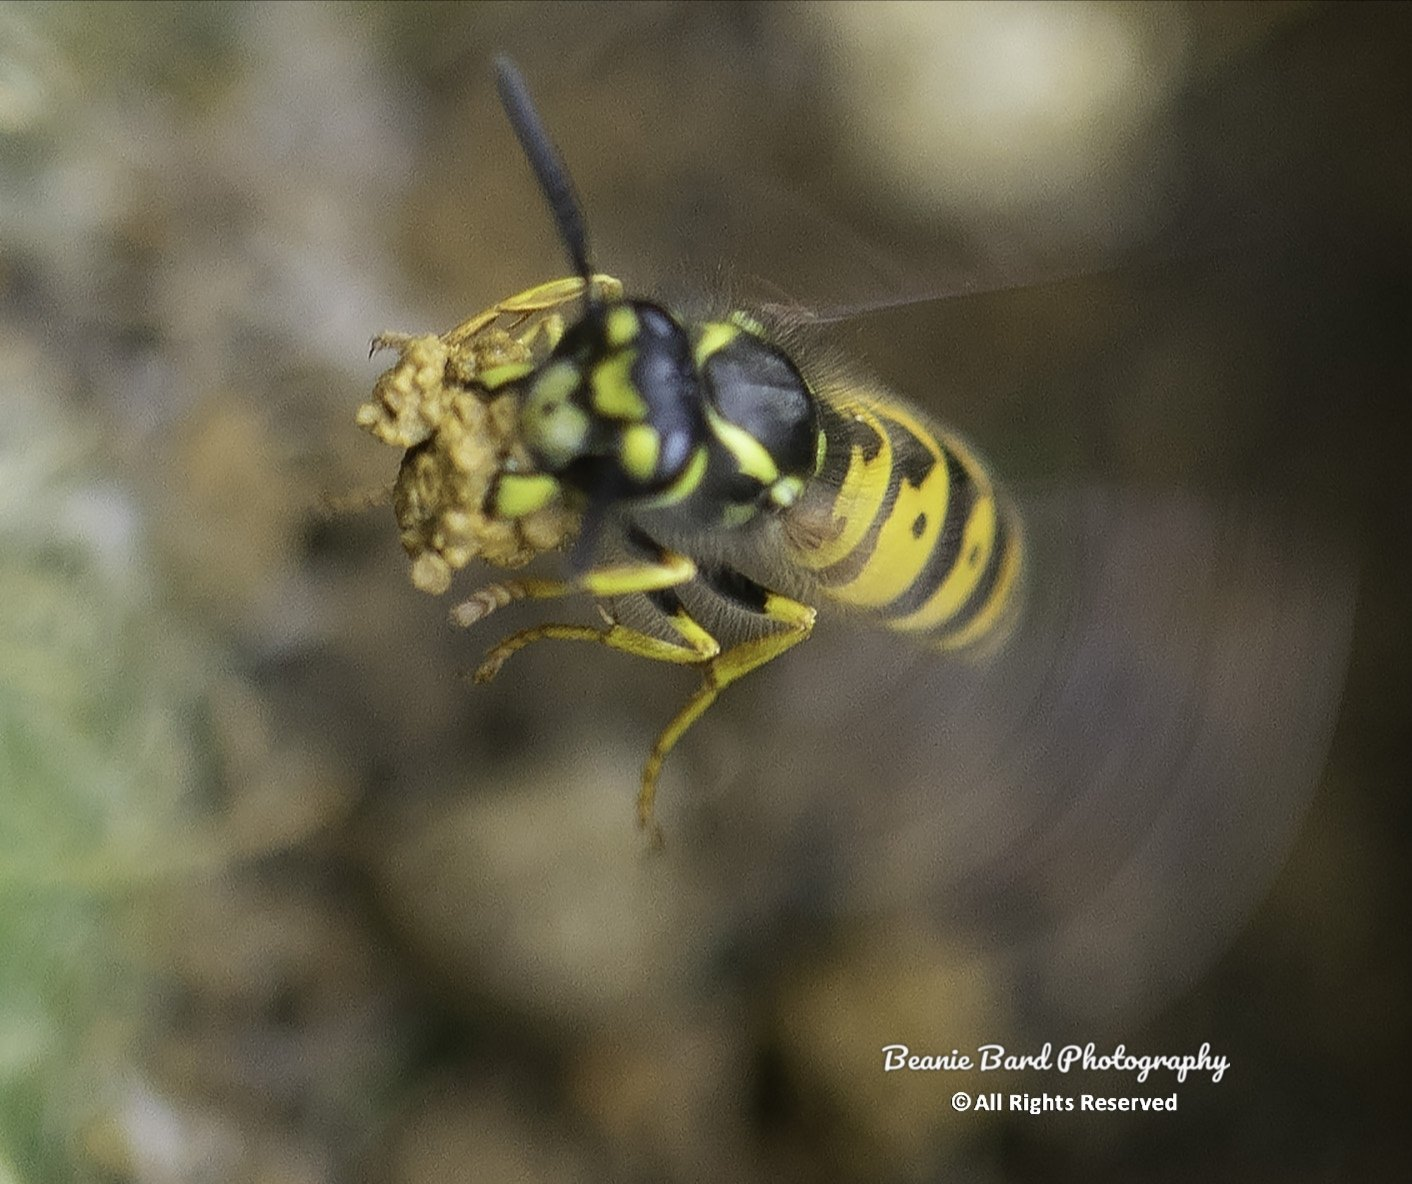 Macro image of a wasp in flight carrying a crumb of food